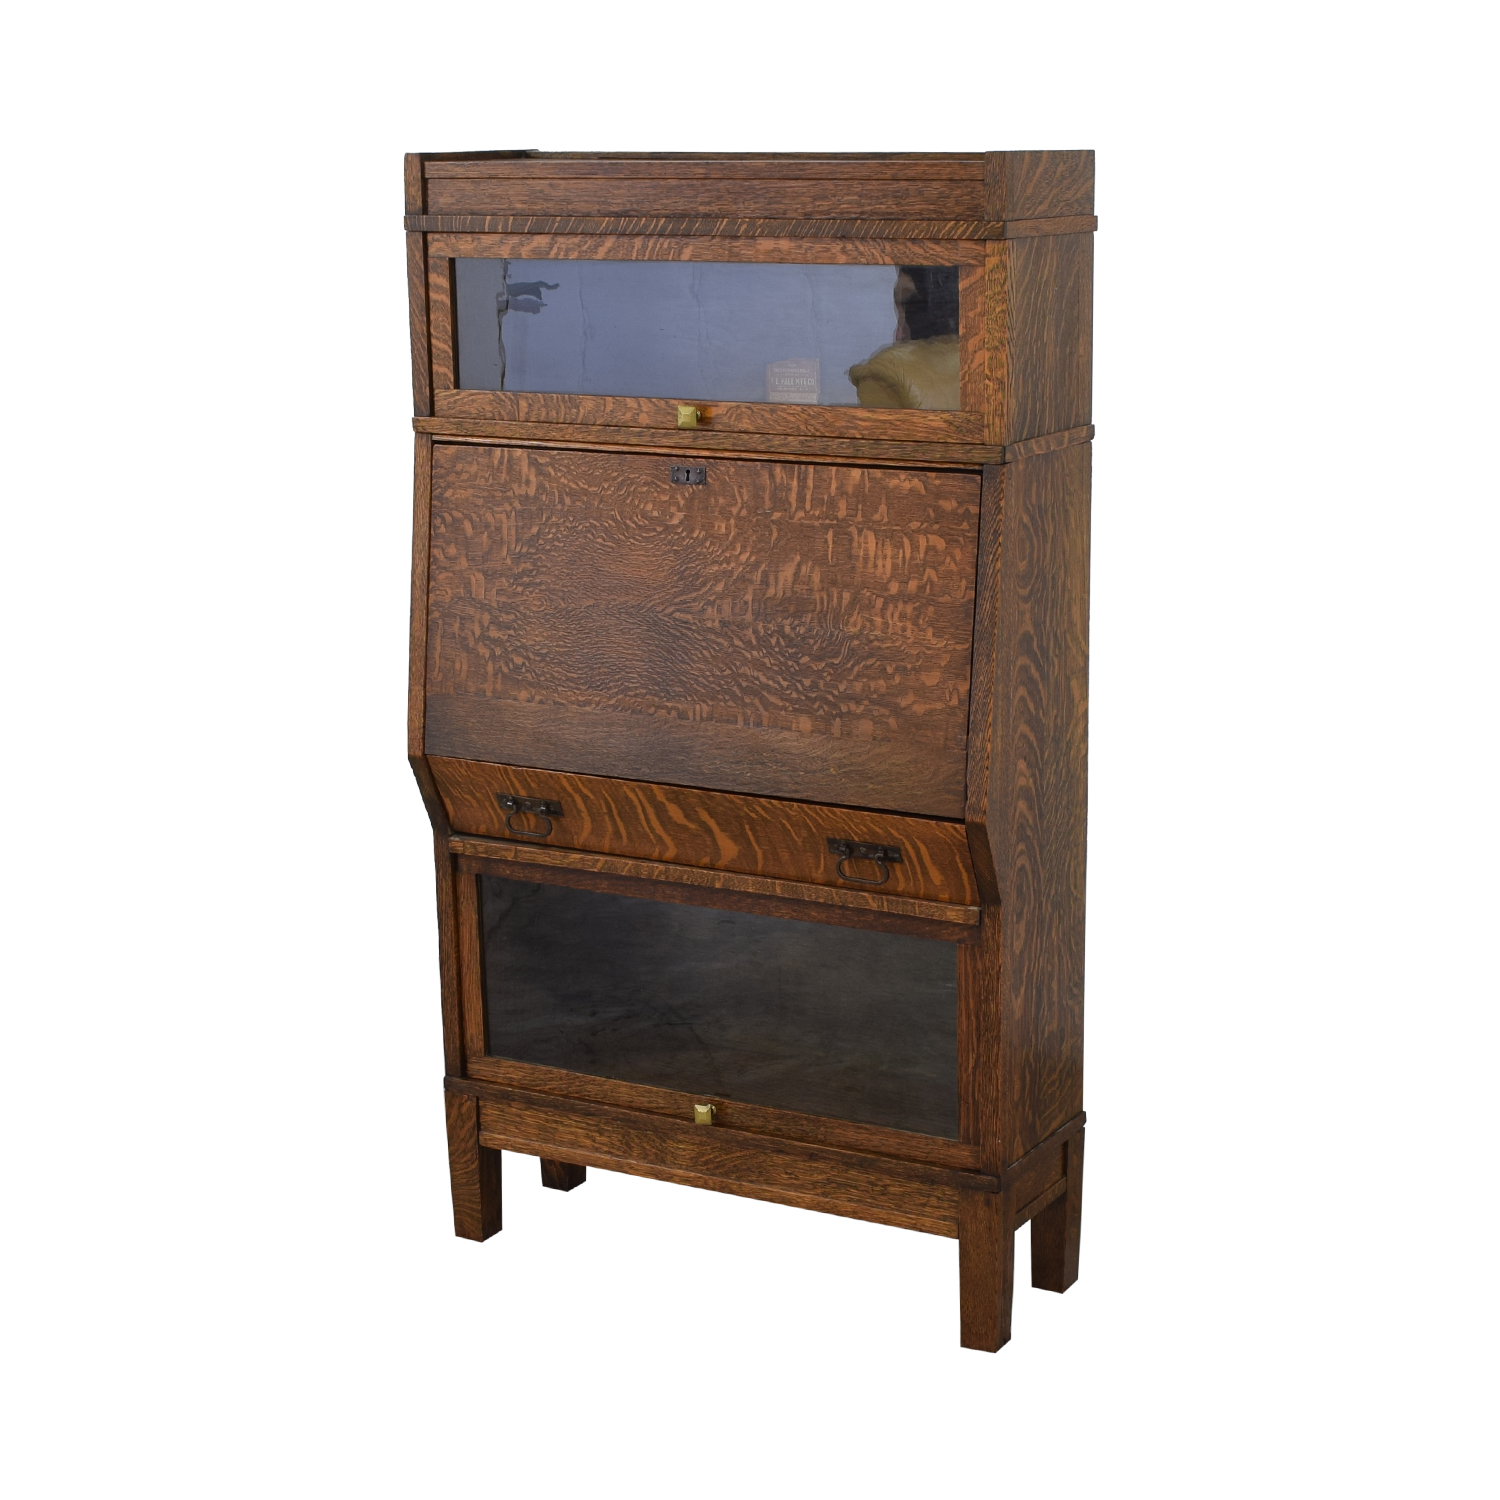 Hale Manufacturing Early American Antique Secretary / Tables